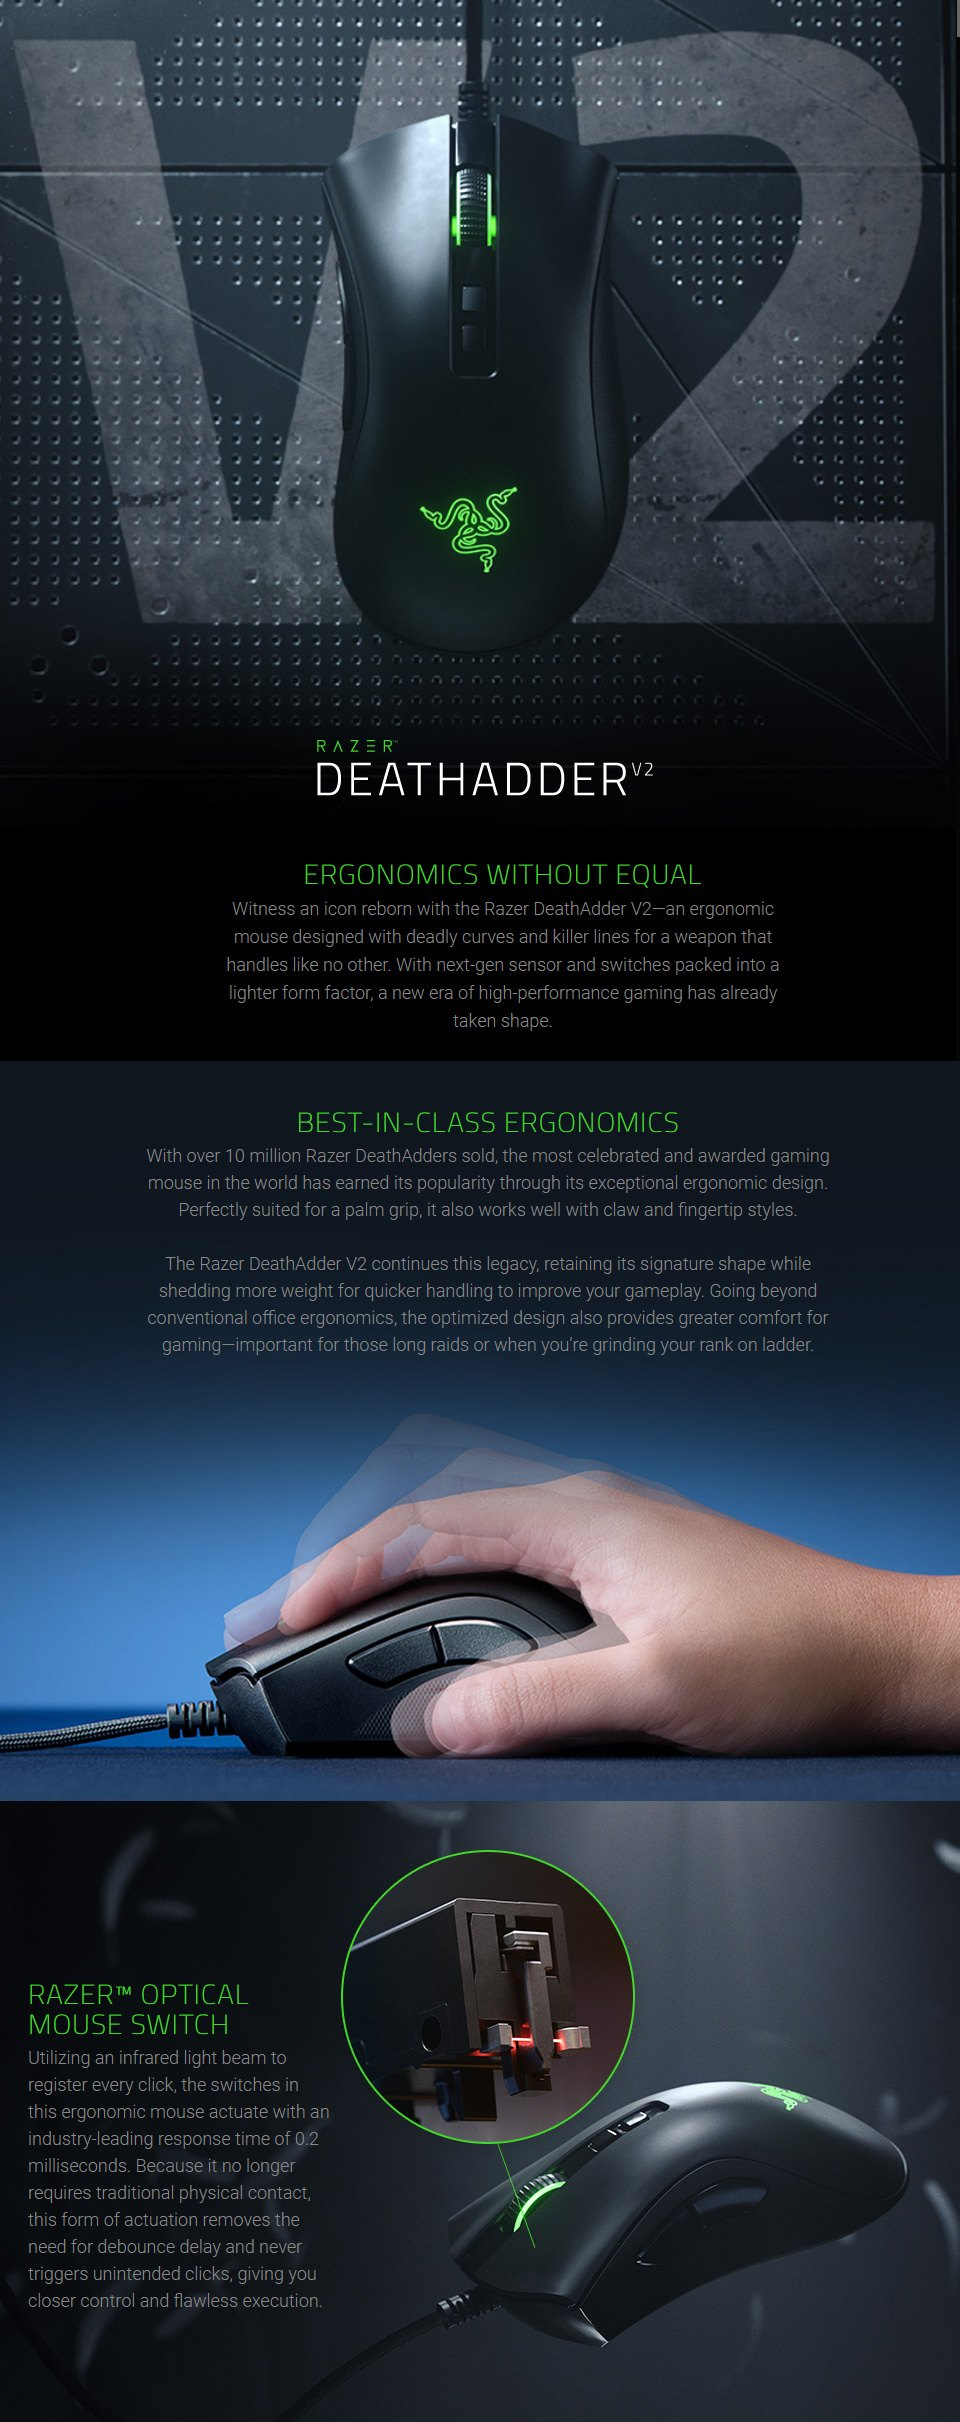 Razer DeathAdder V2 Optical Gaming Mouse features